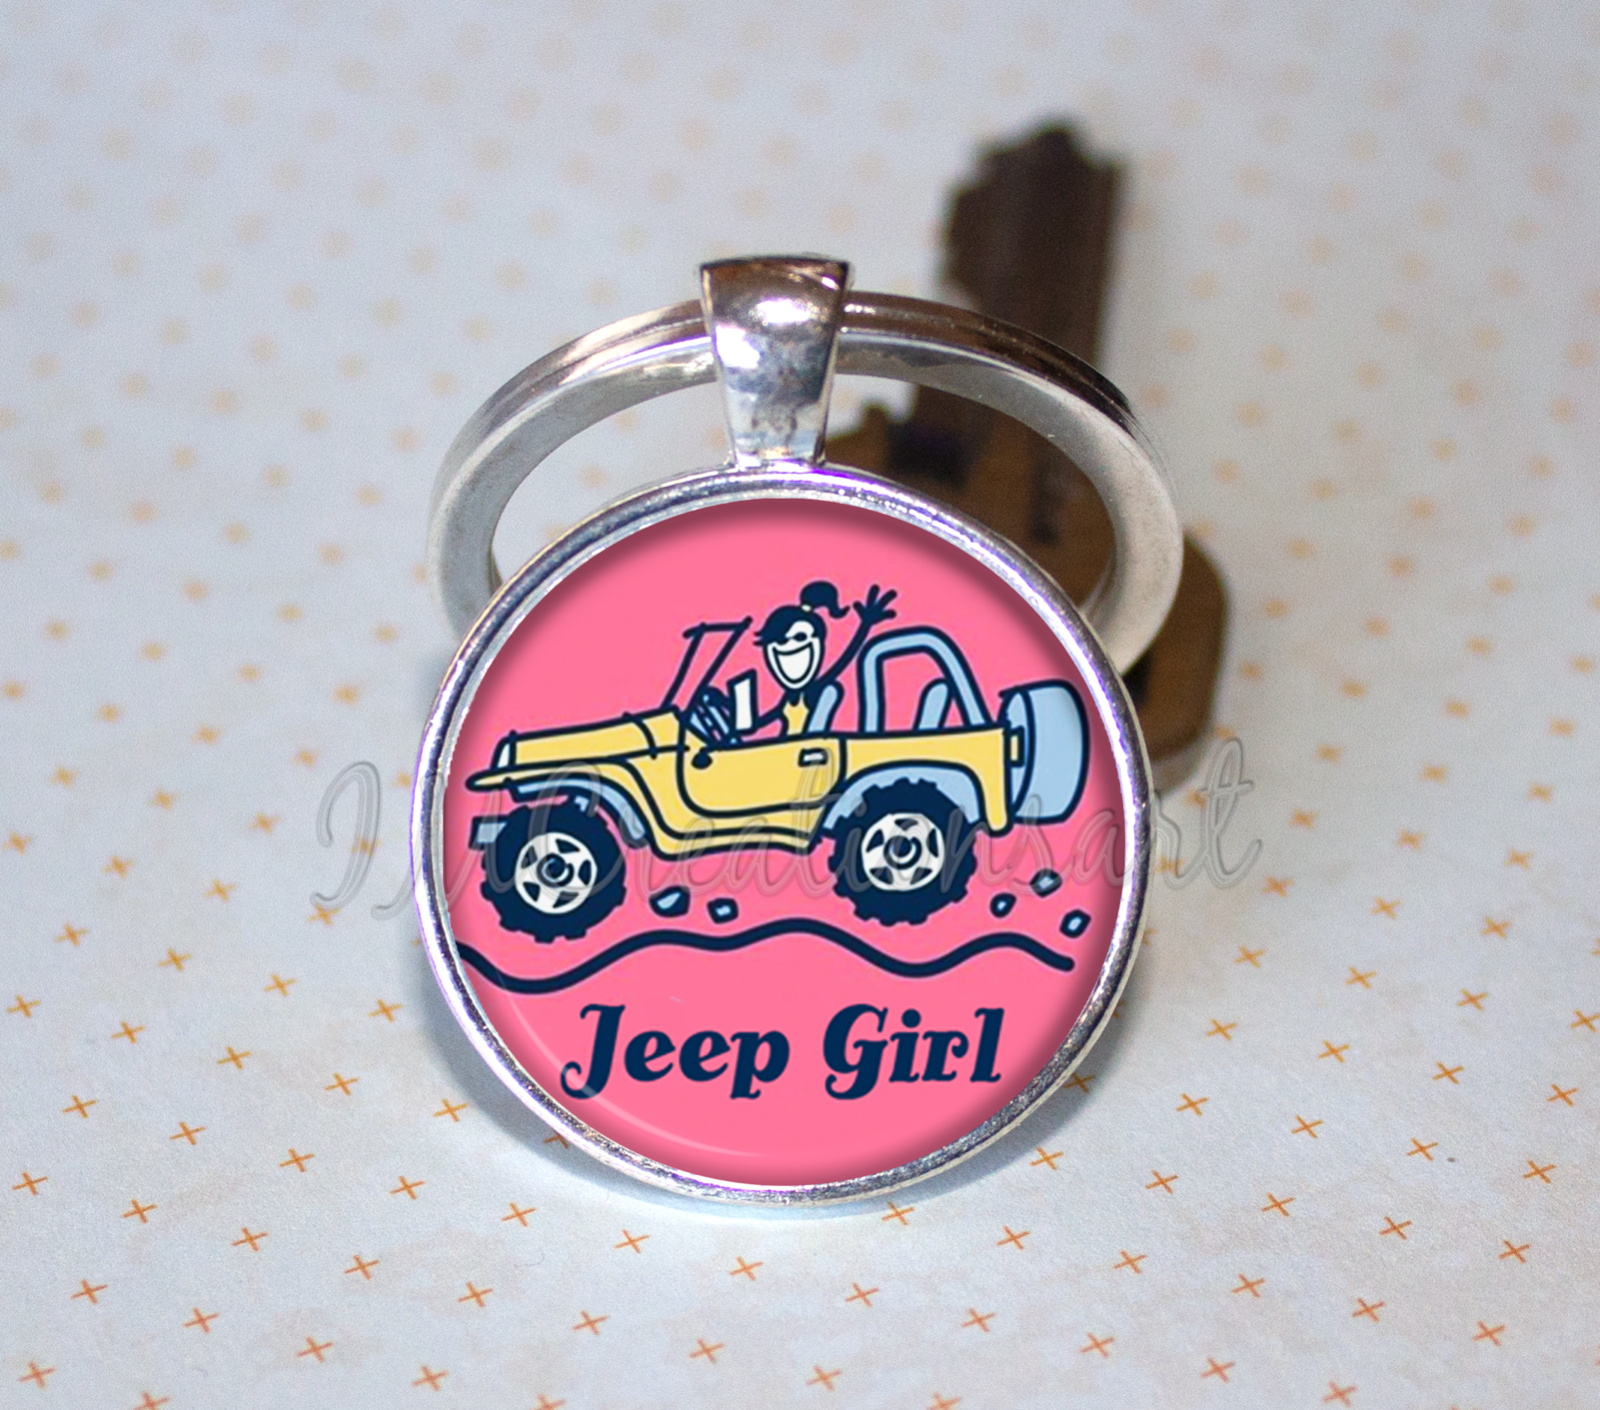 CHENVA Jeep Keychain Jeep Girl Gift Stainless Steel Dog Tag Keyring Jeep Wrangler Accessories Gift for Jeep Lover